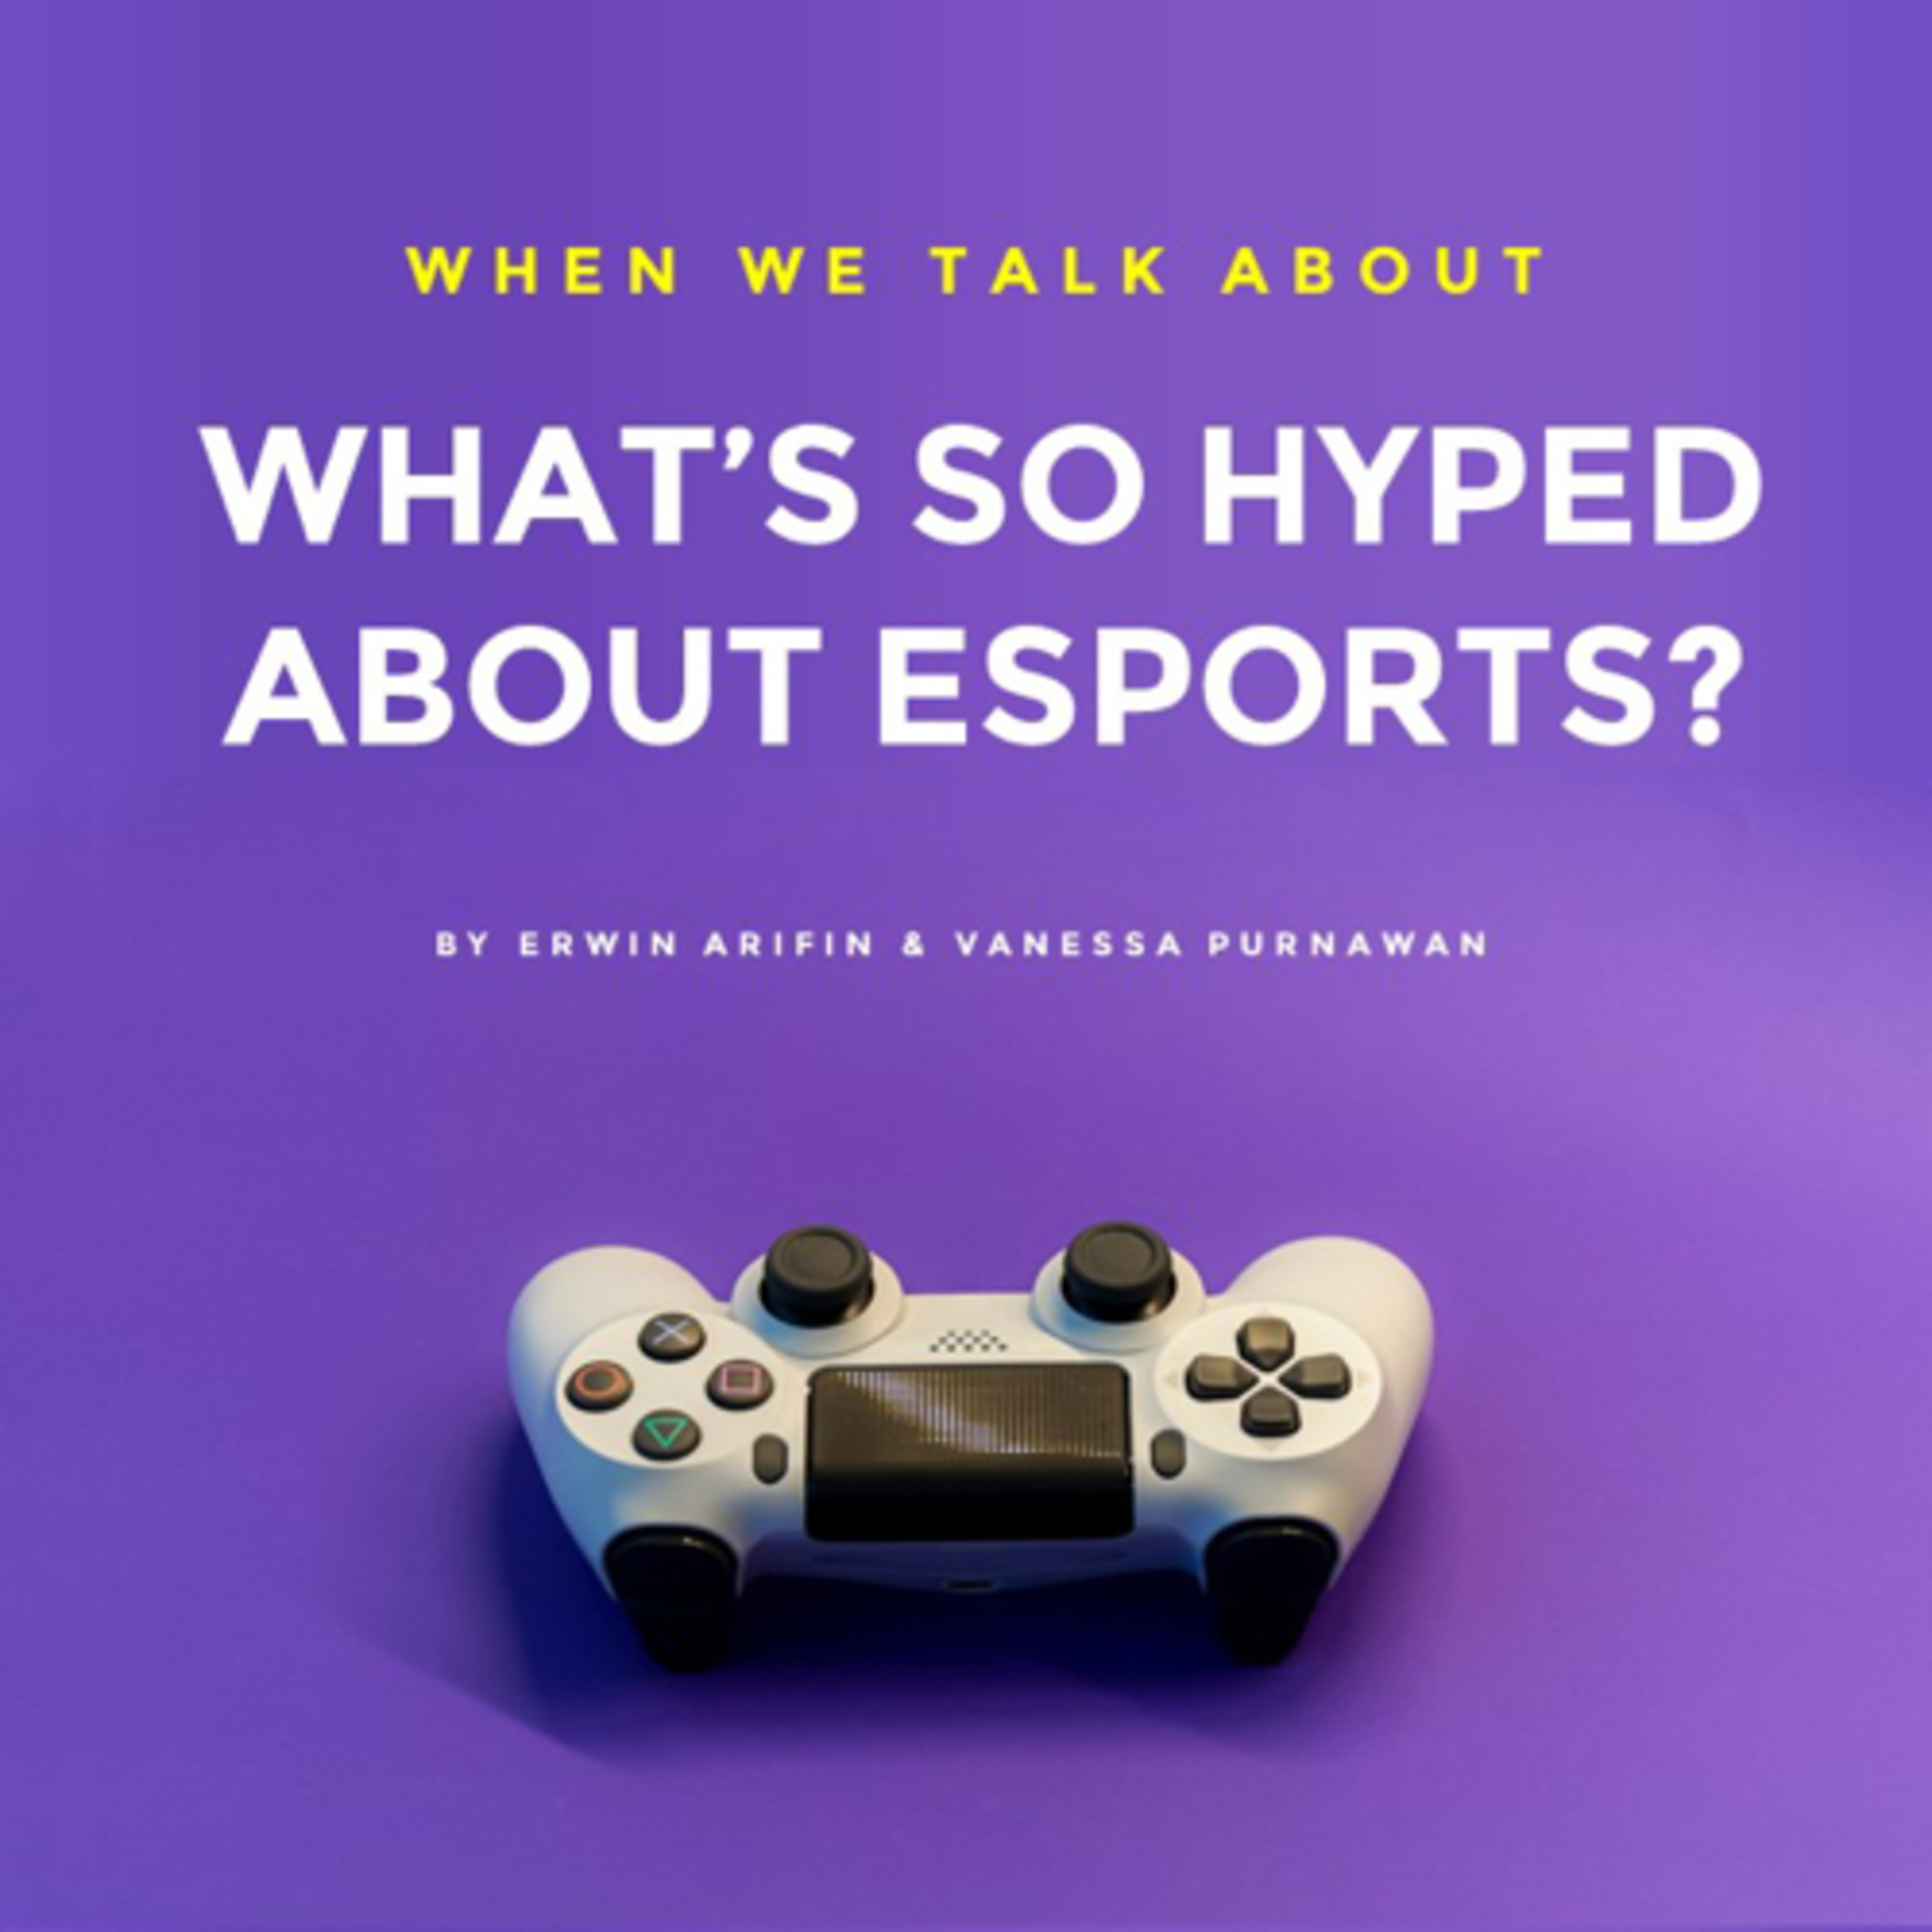 What's So Hyped About Esports?